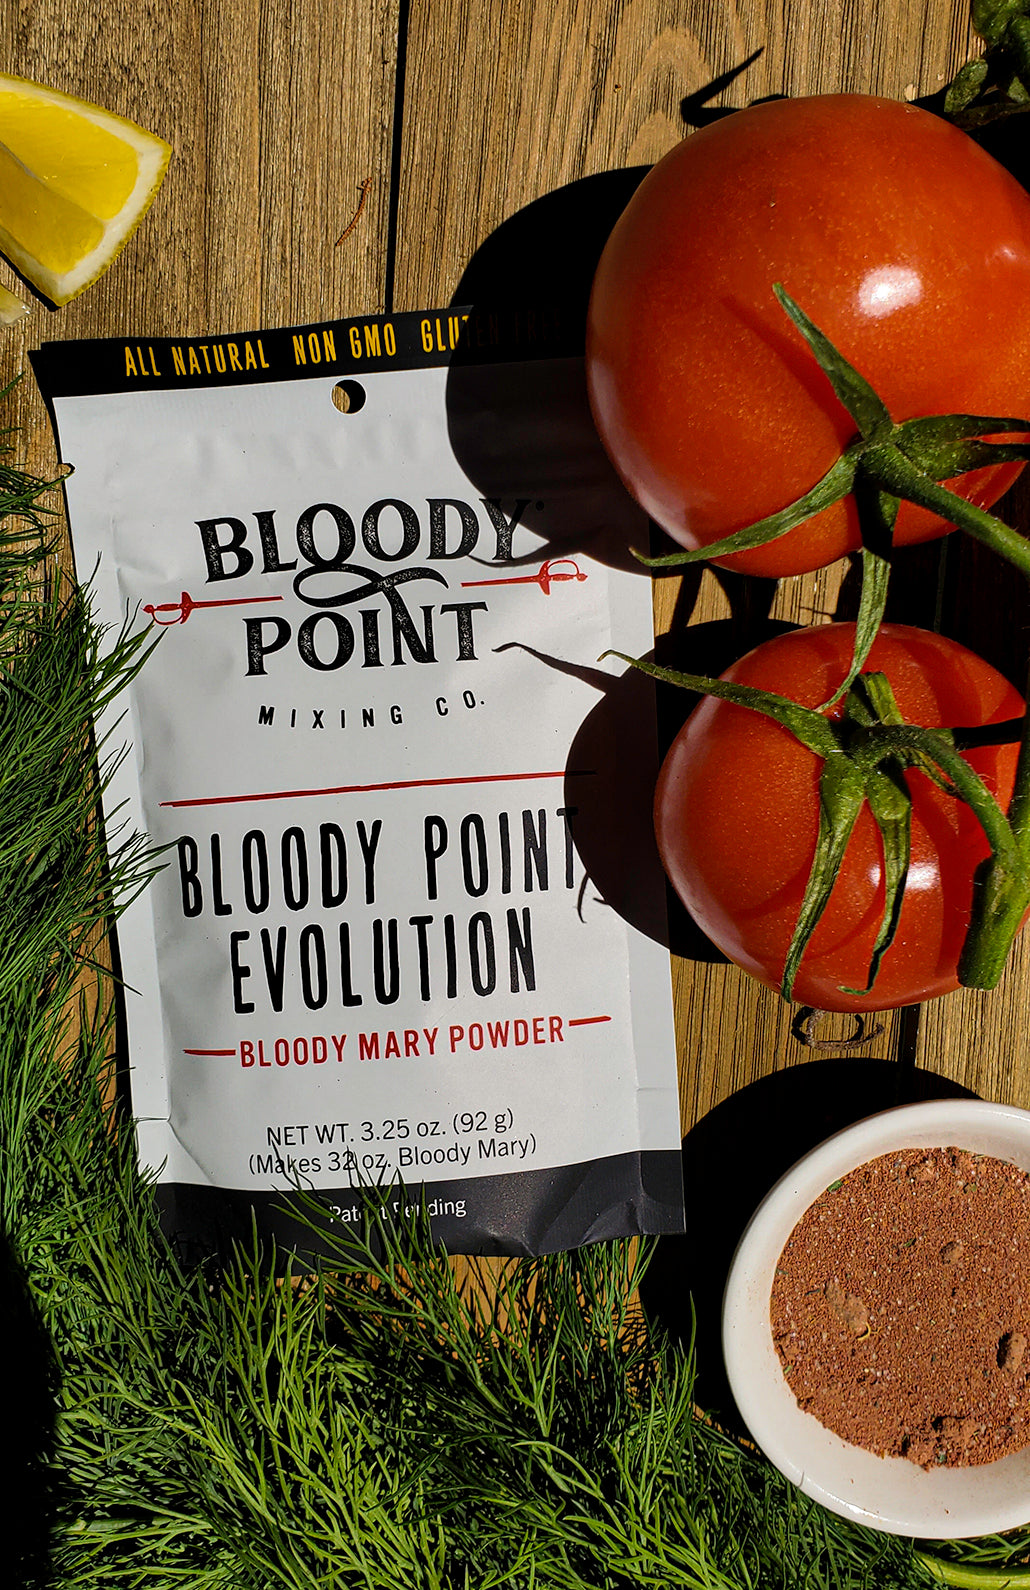 Bloody Point Evolution